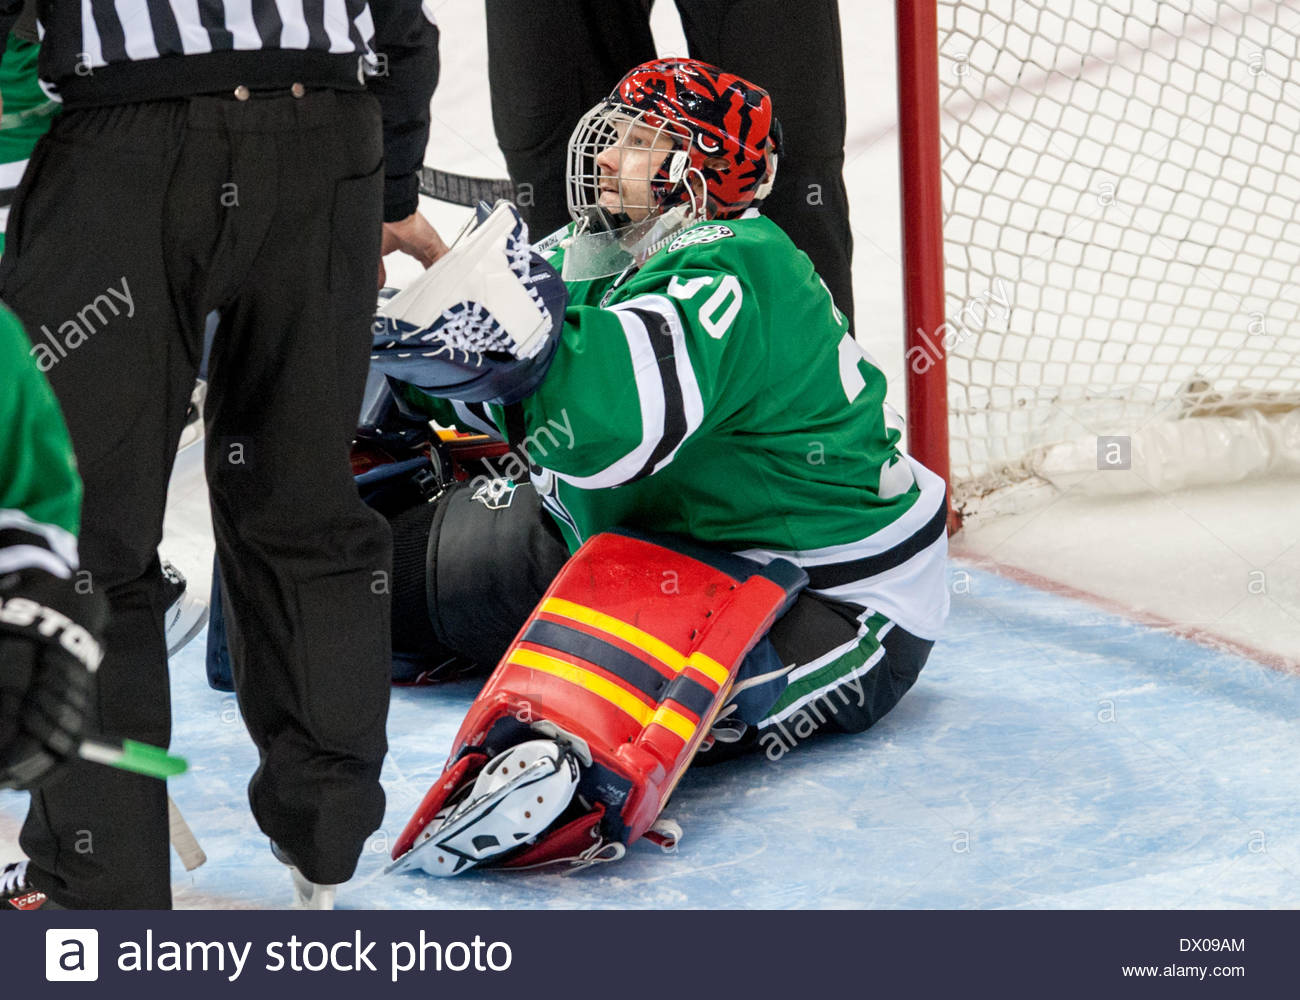 Image result for tim thomas nhl